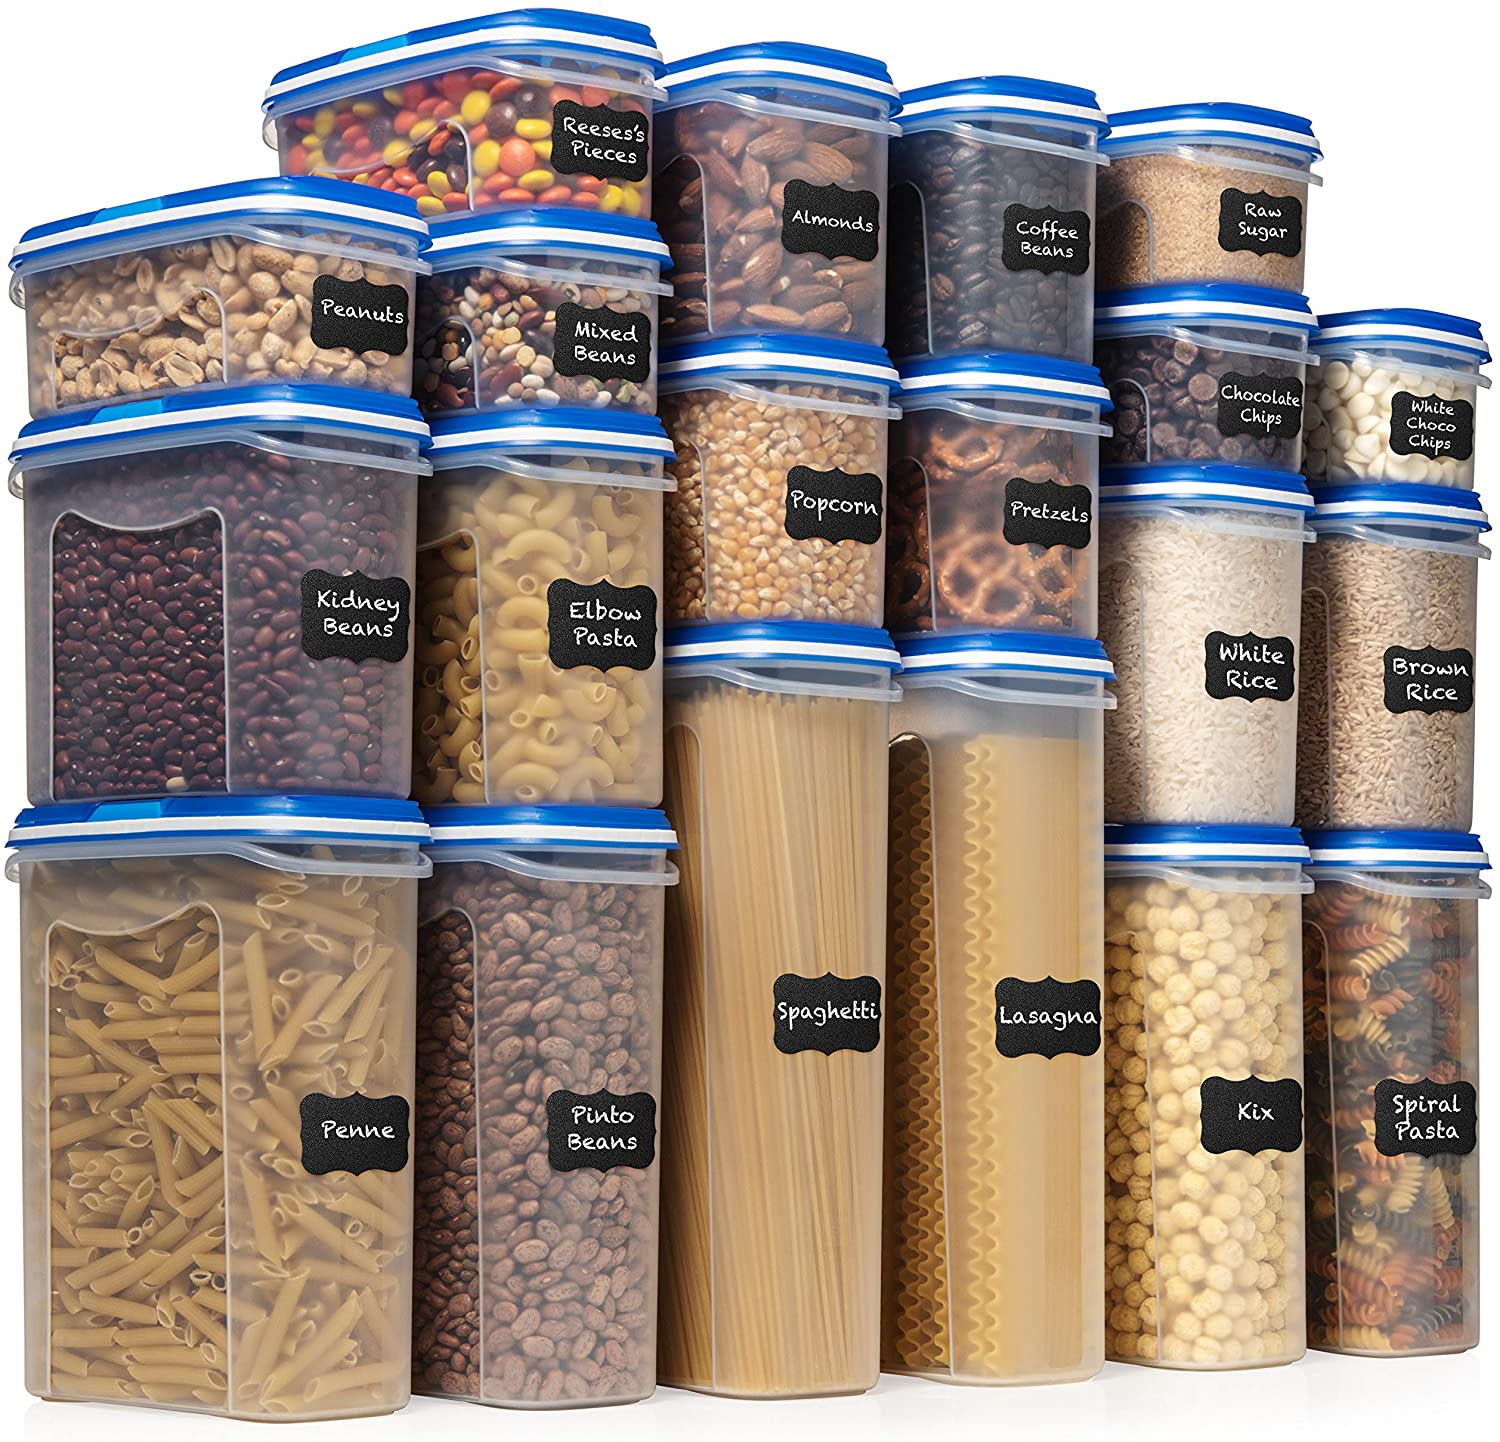 Amazon Com Shazo Food Storage Containers 40 Piece Set 20 Container Set Airtight Dry Food With Innovative Dual Utility Interchangeable Lid One Lid Fits All Freezer Safe Pantry Organization And Stackable Kitchen